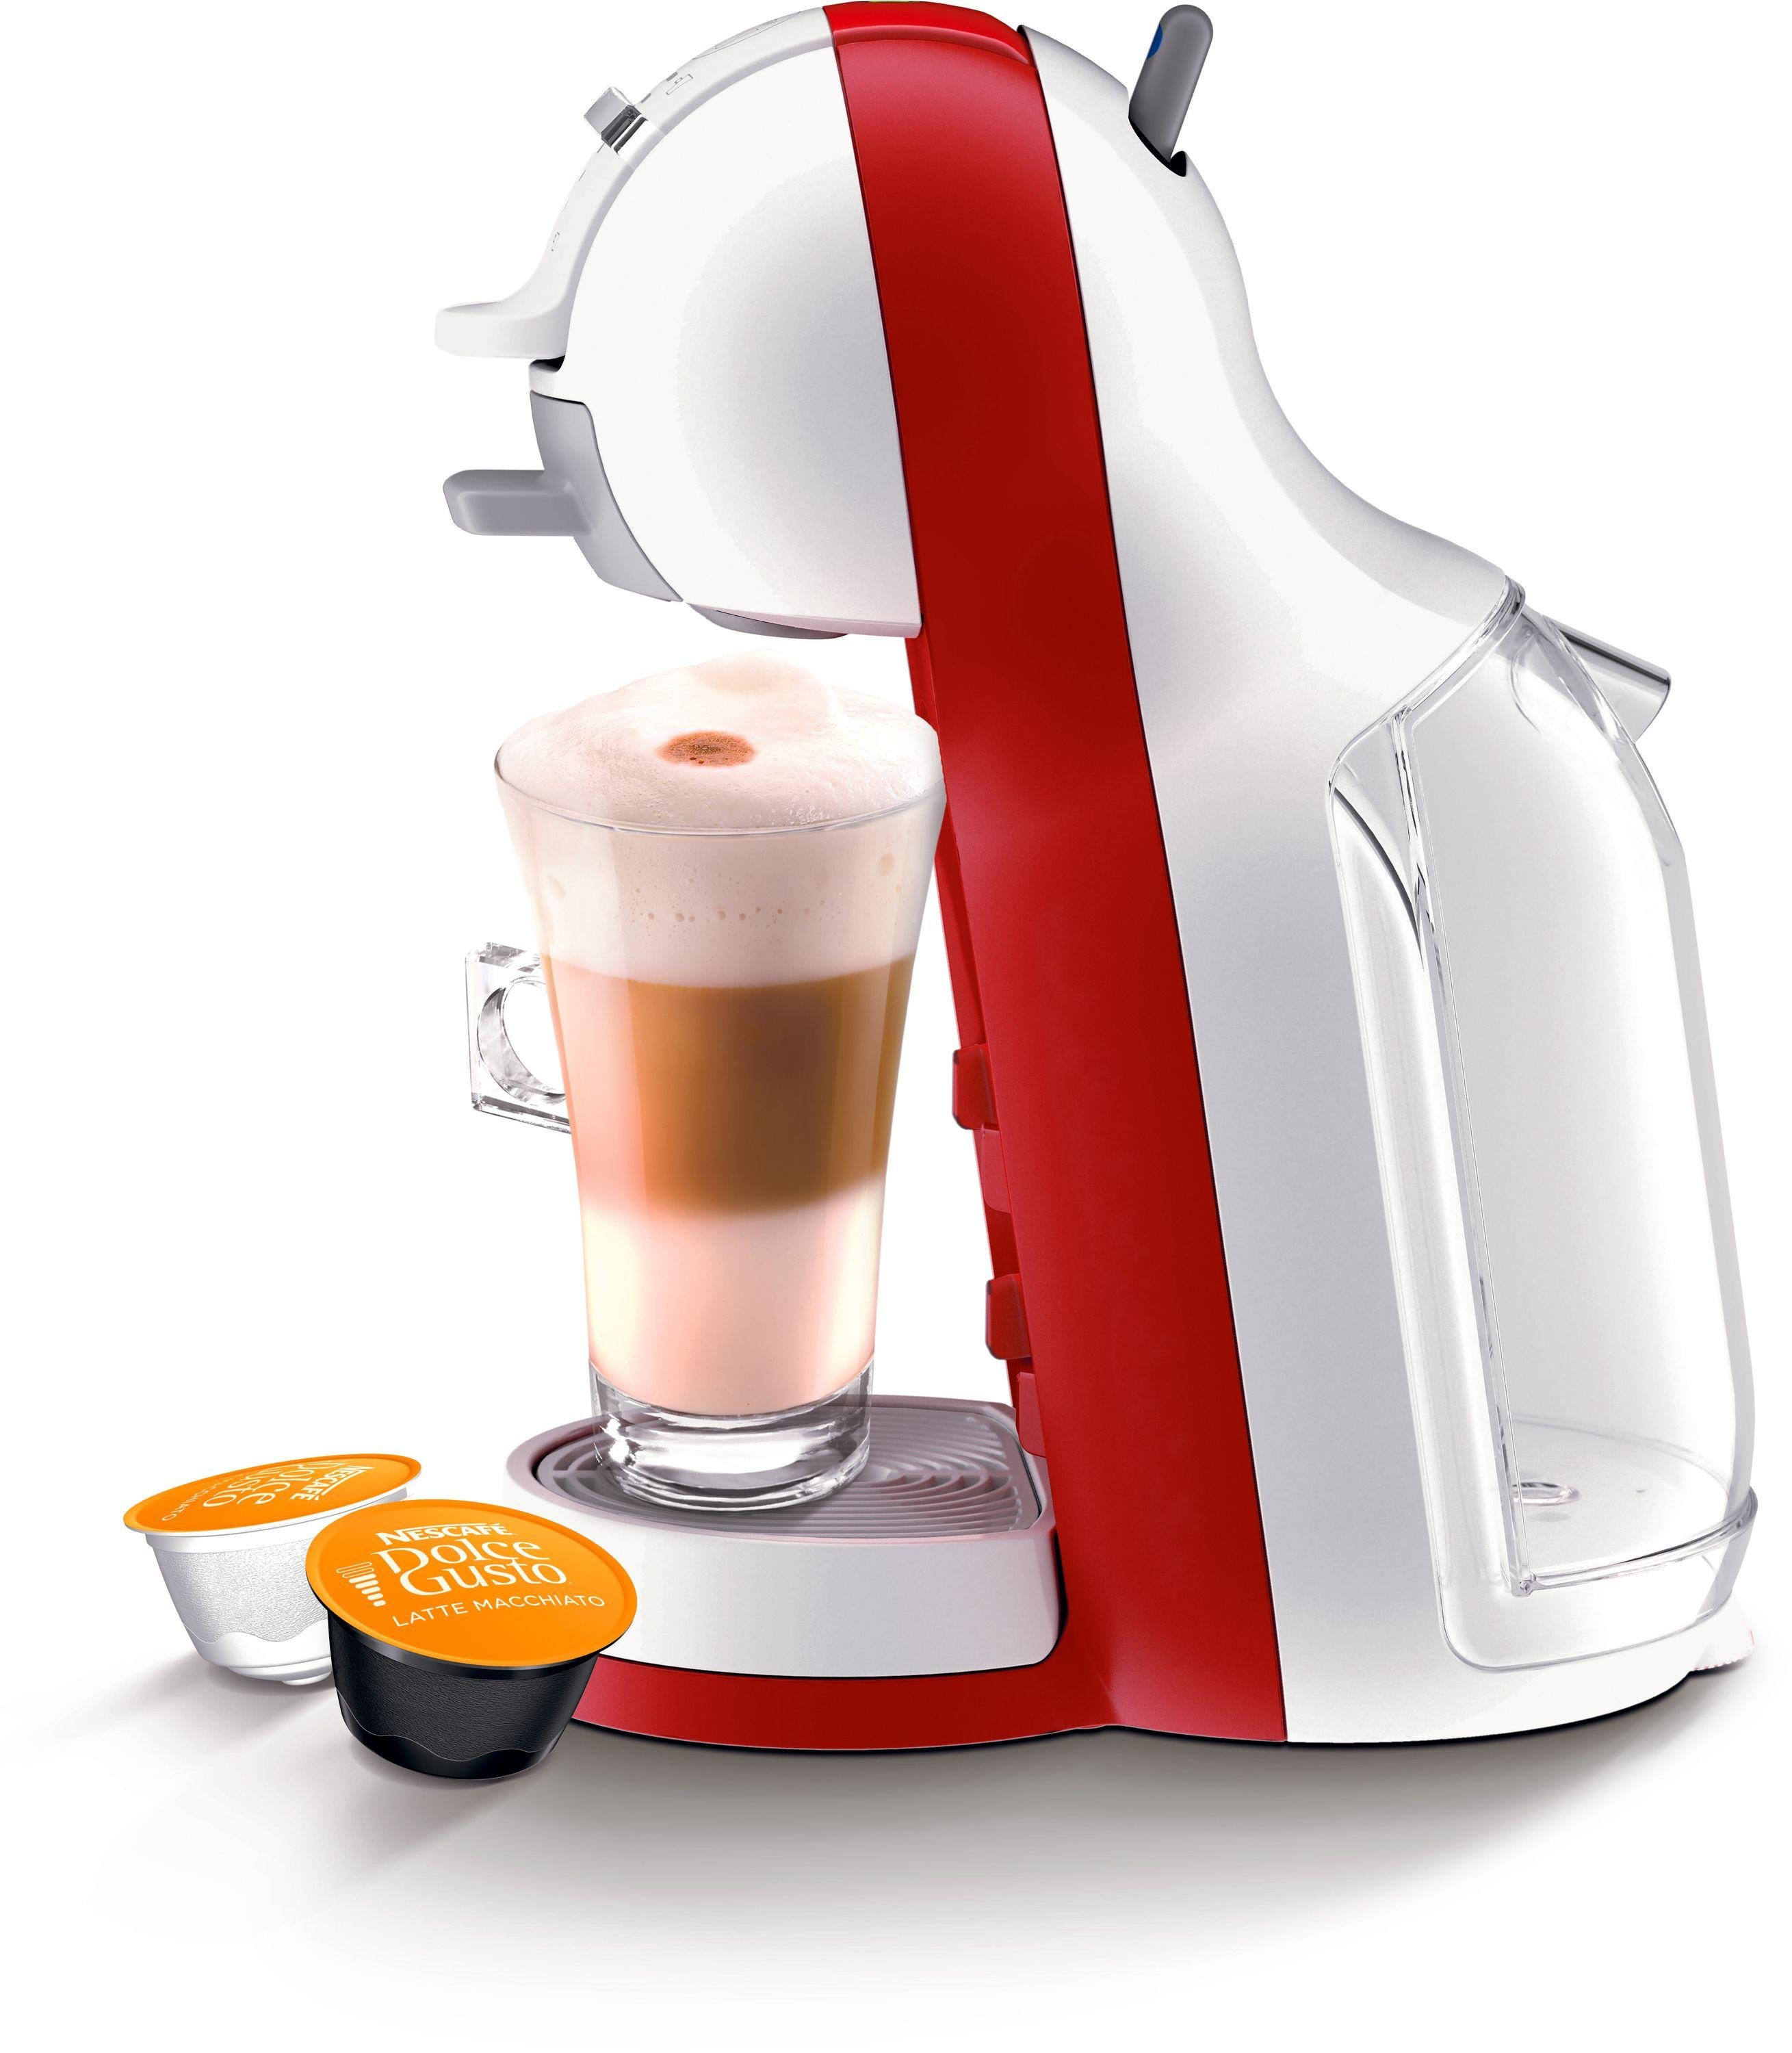 buy nescafe dolce gusto mini me automatic coffee machine - red at